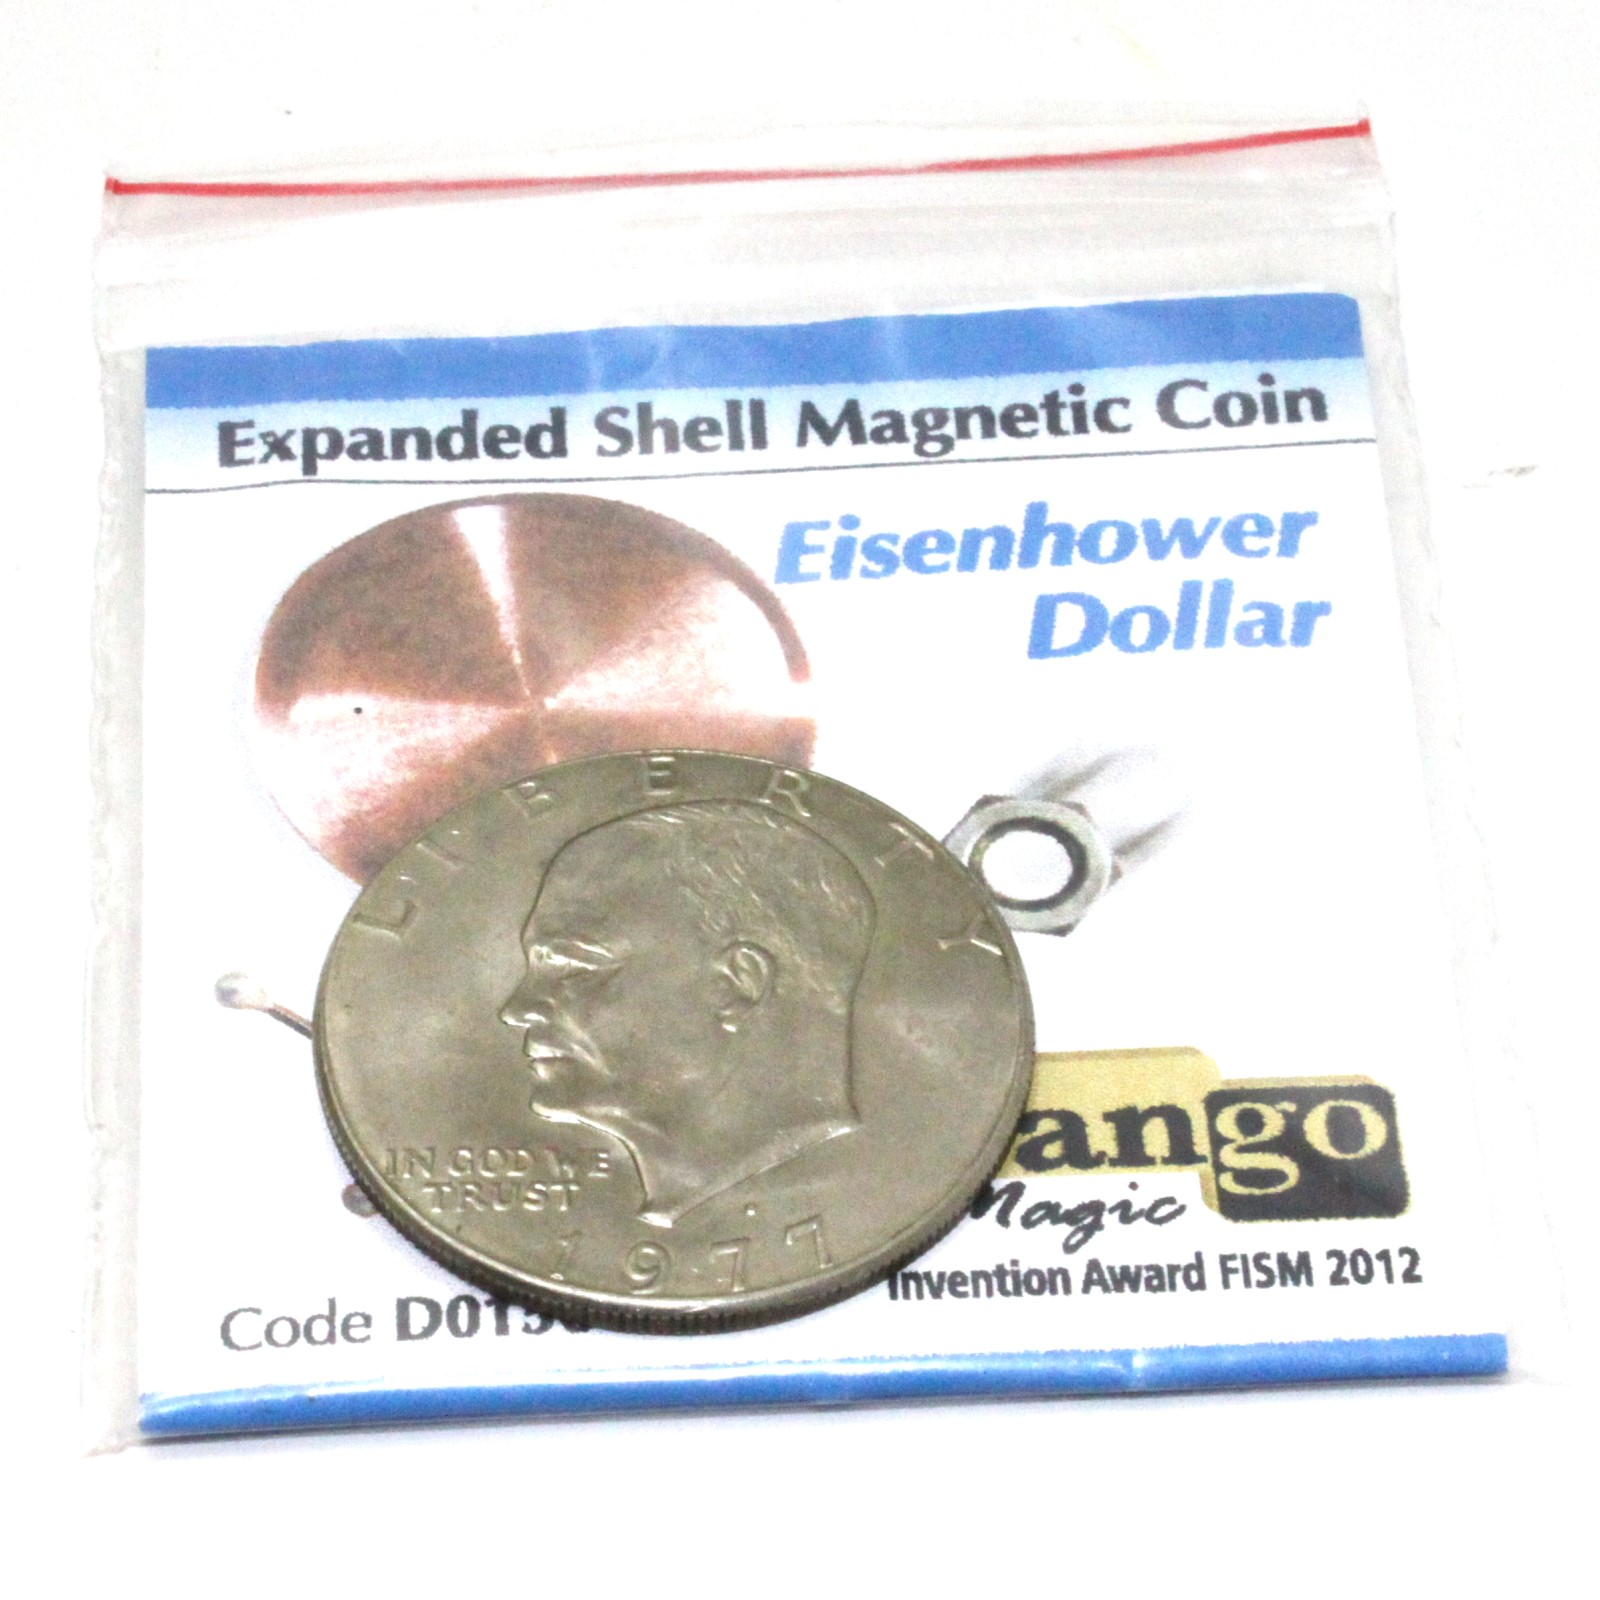 Expanded Magnetic Shell (Eisenhower Dollar) by Tango Magic